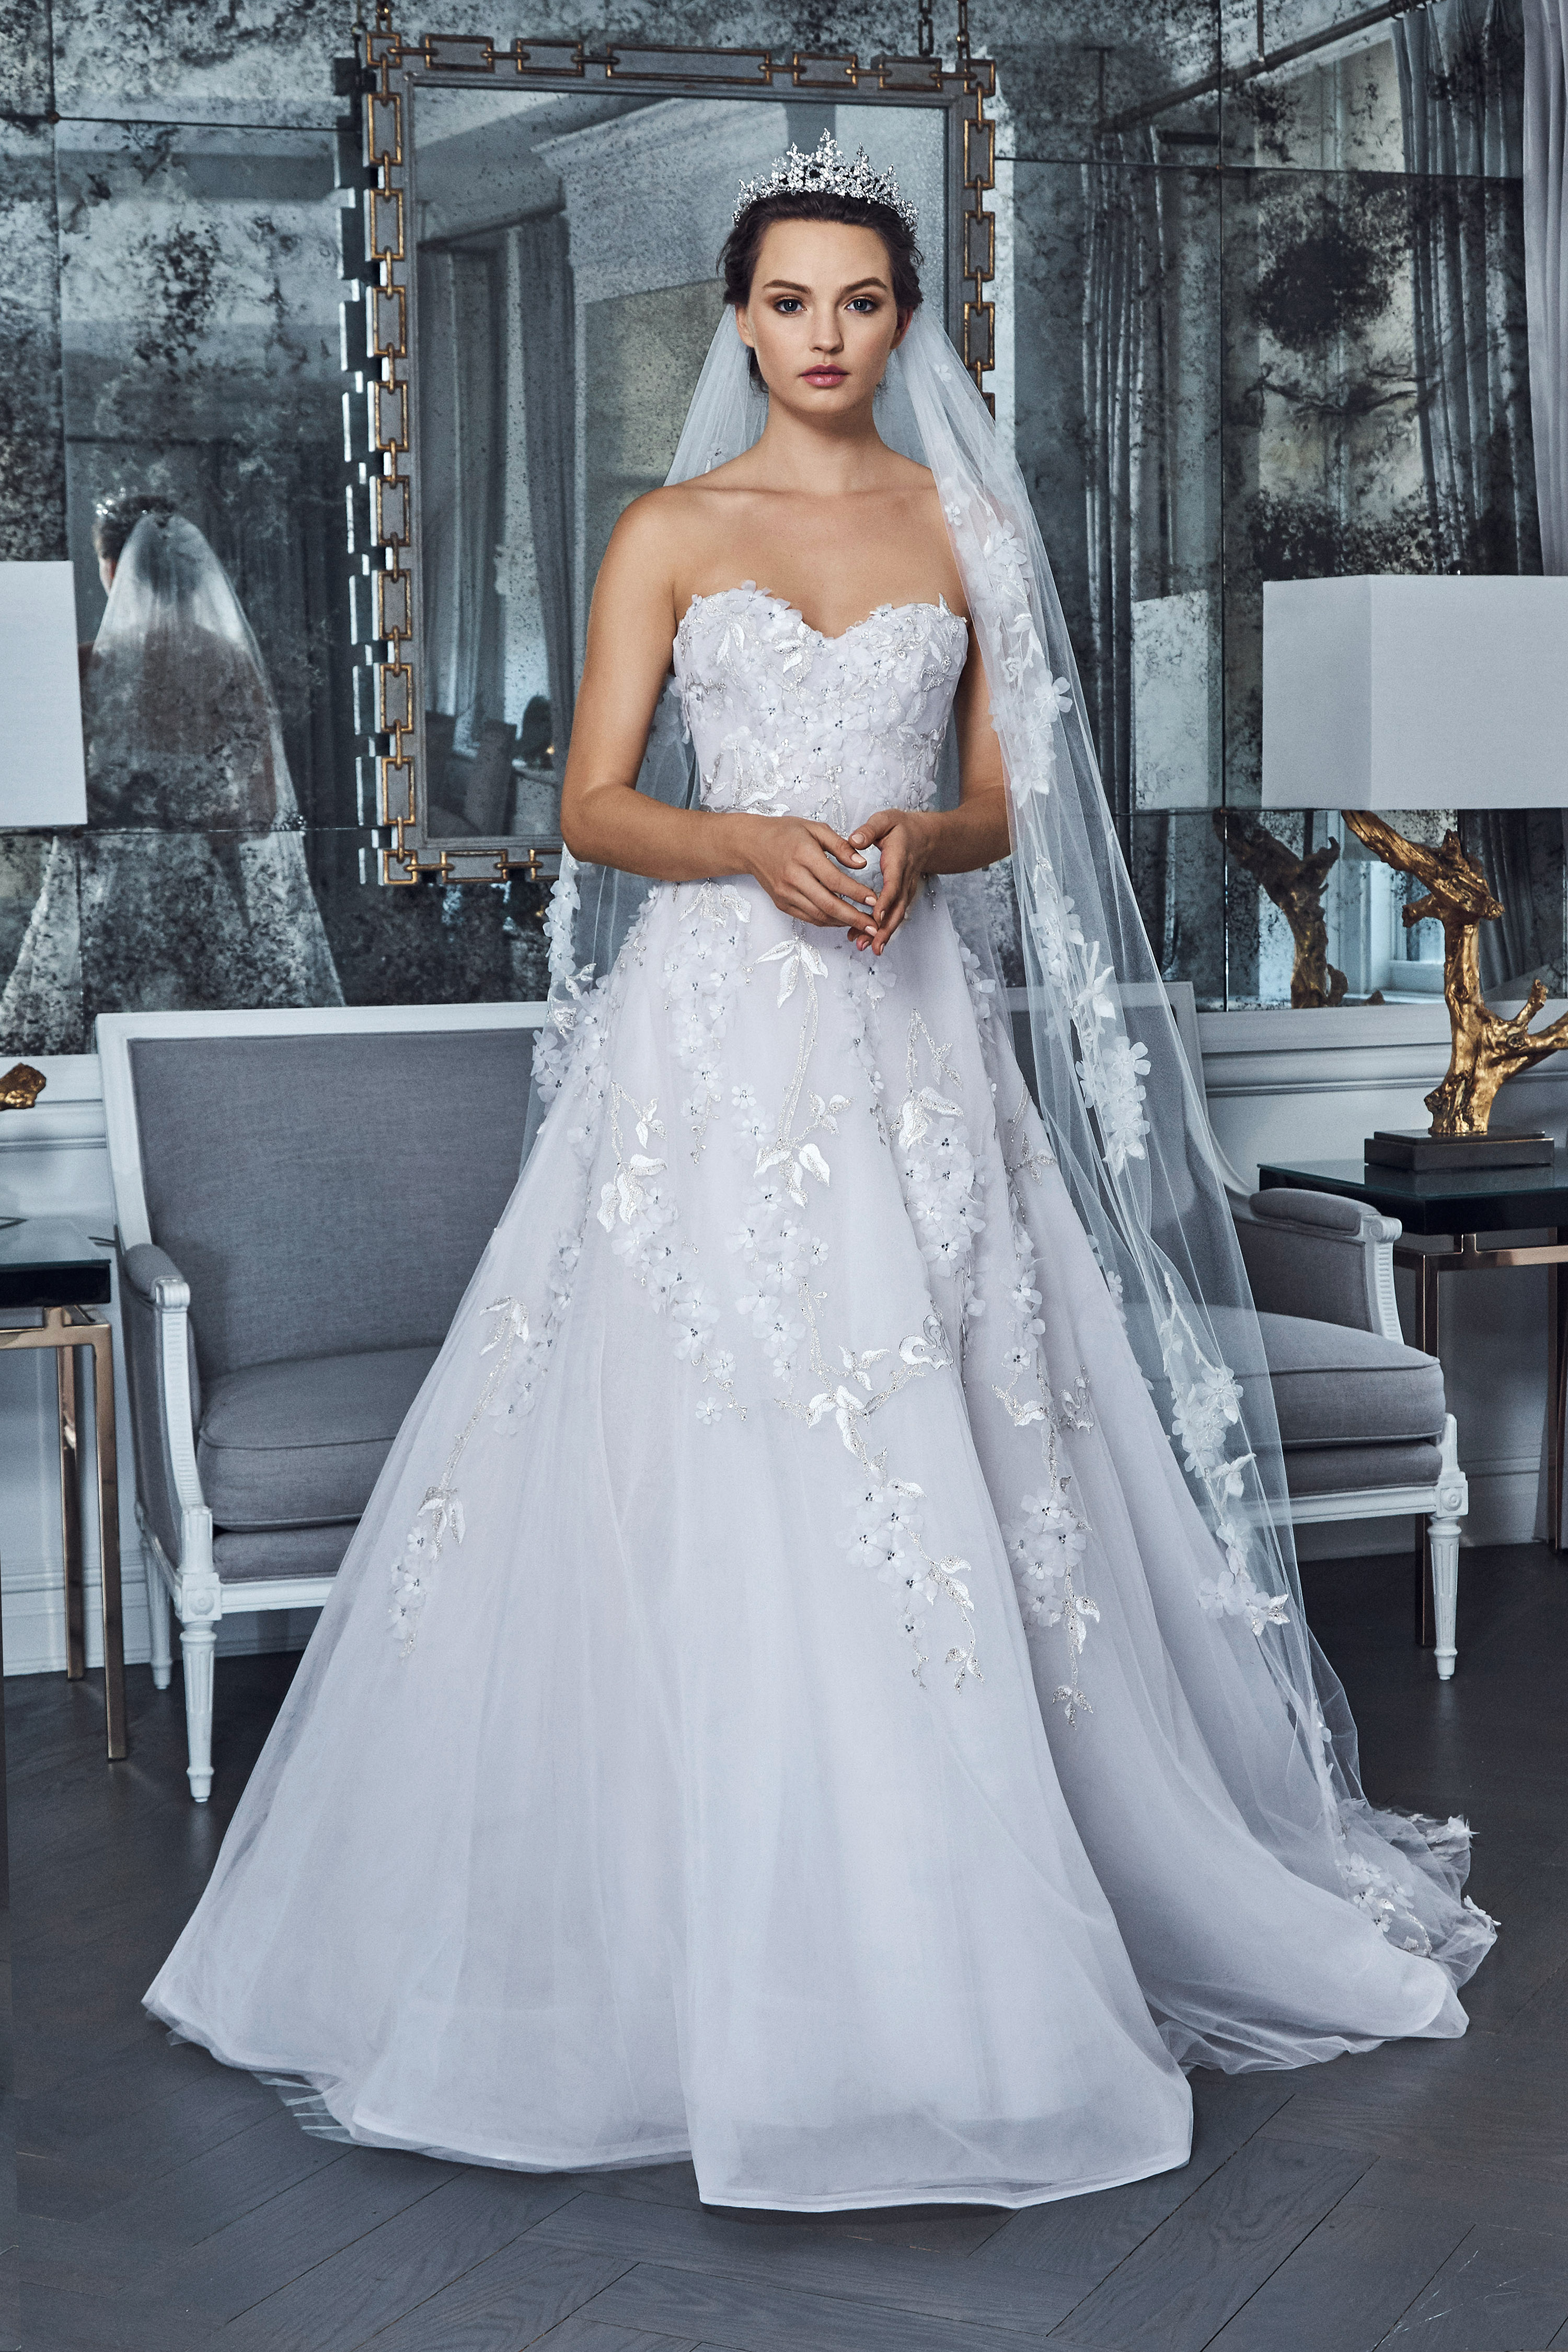 romona keveza collection wedding dress spring 2019 strapless a-line sweet heart